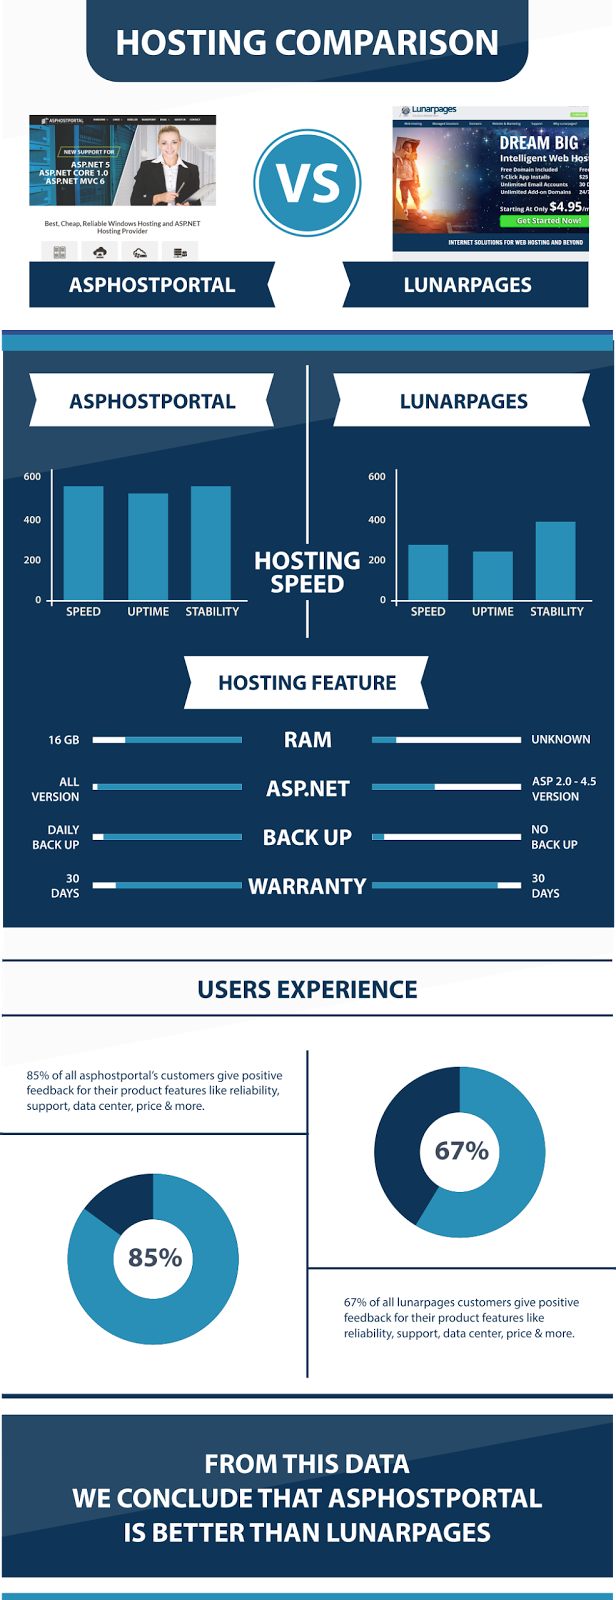 ASP.NET Core 1.0.1 Hosting Comparison | ASPHostPortal Vs LunarPages | Explained With Infographic